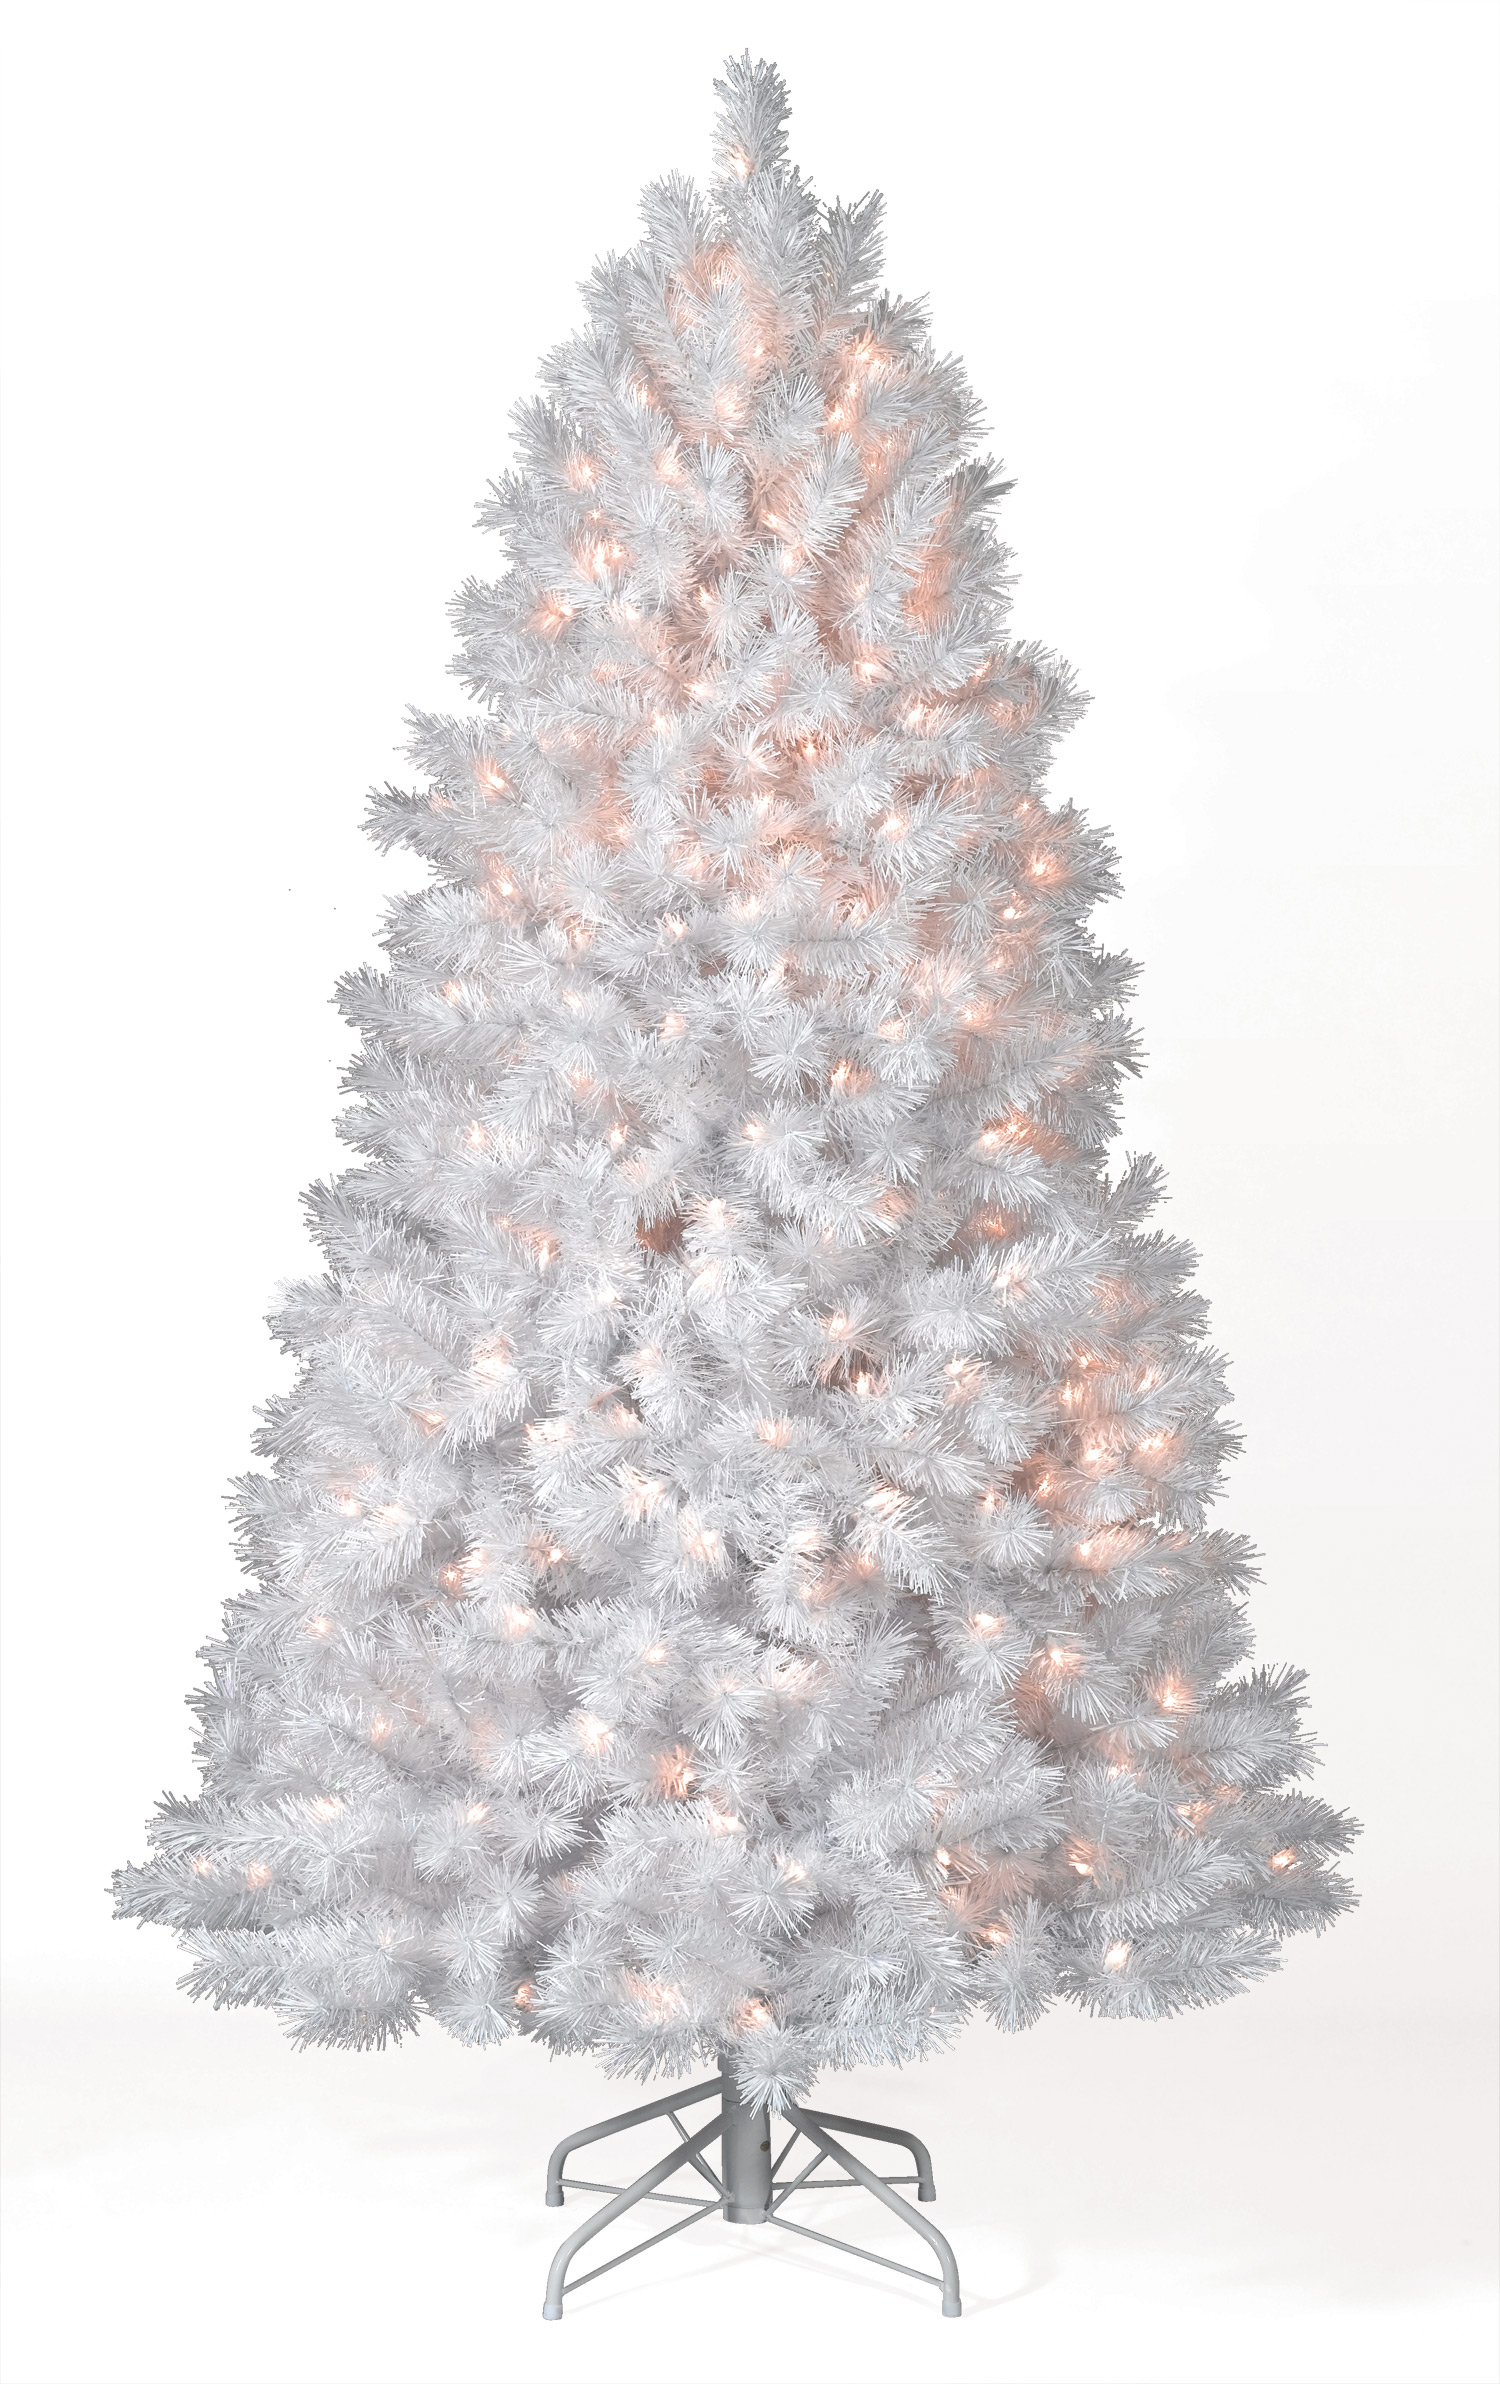 High Quality 7 Foot Shimmering White Christmas Tree With Clear Lights